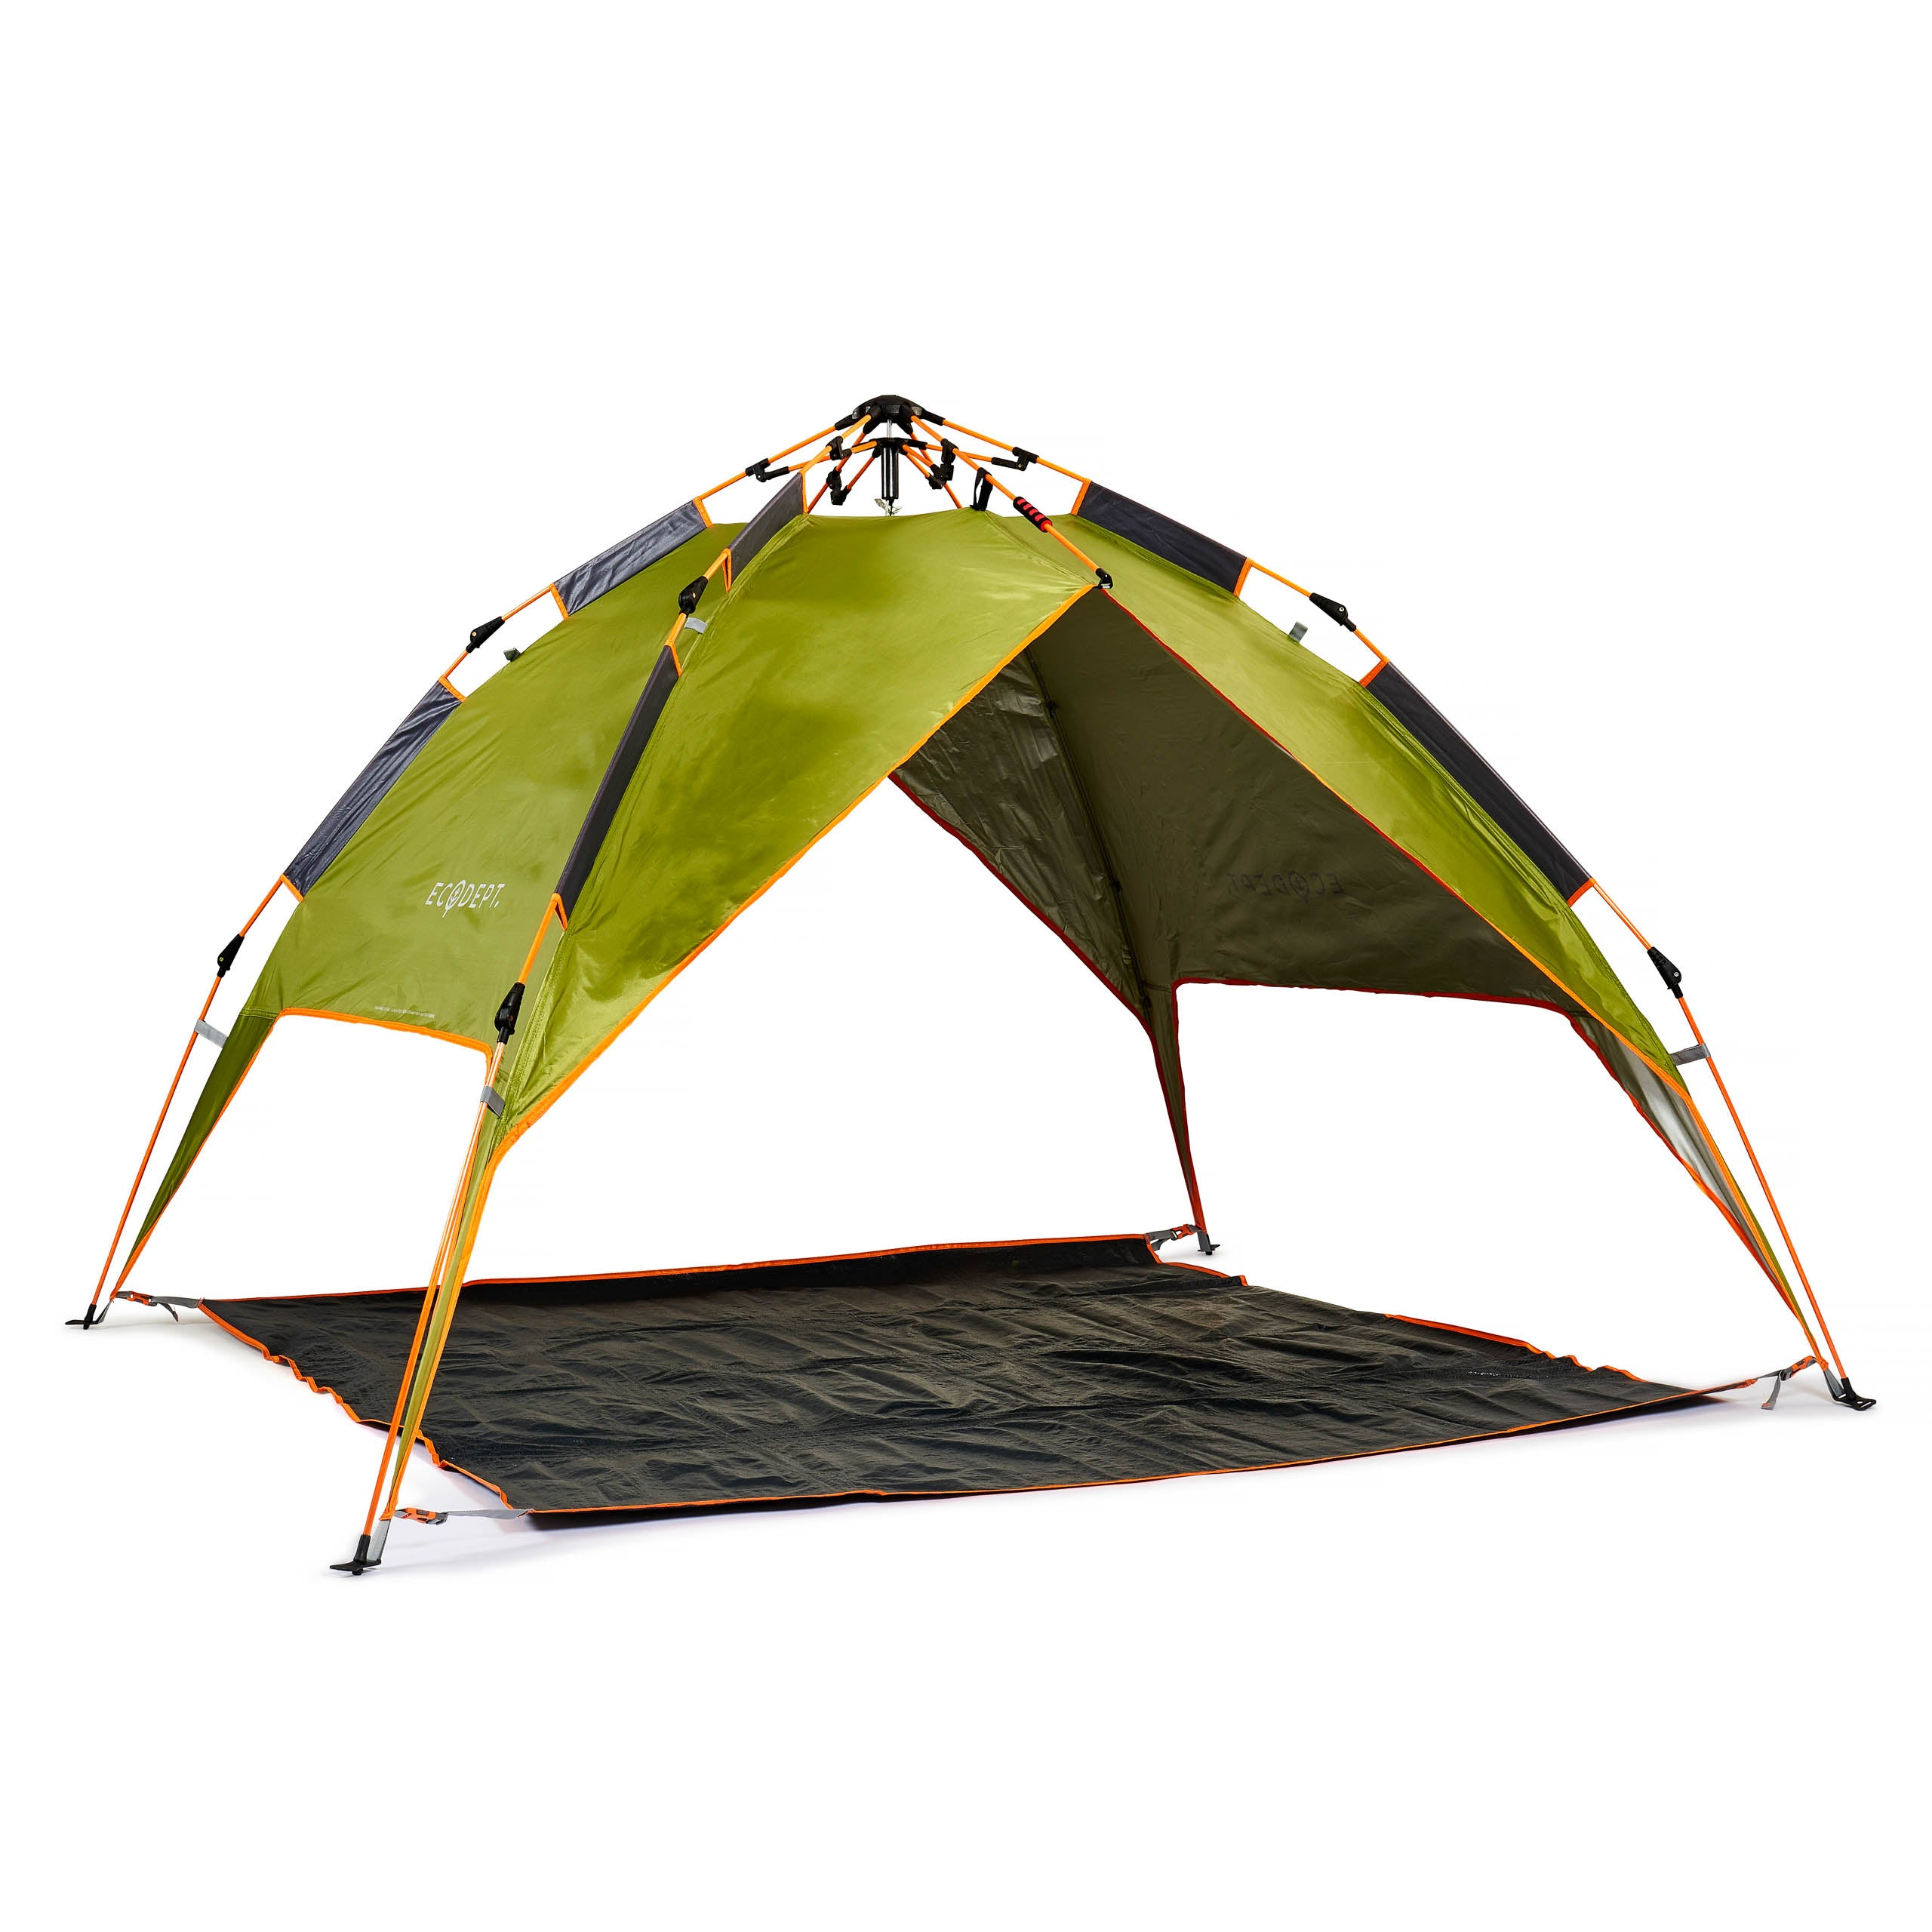 ... Instant Dome Tent - 2/3 Person ...  sc 1 st  ECOdept & Instant Dome Tent - 2/3 Person   ECOdept